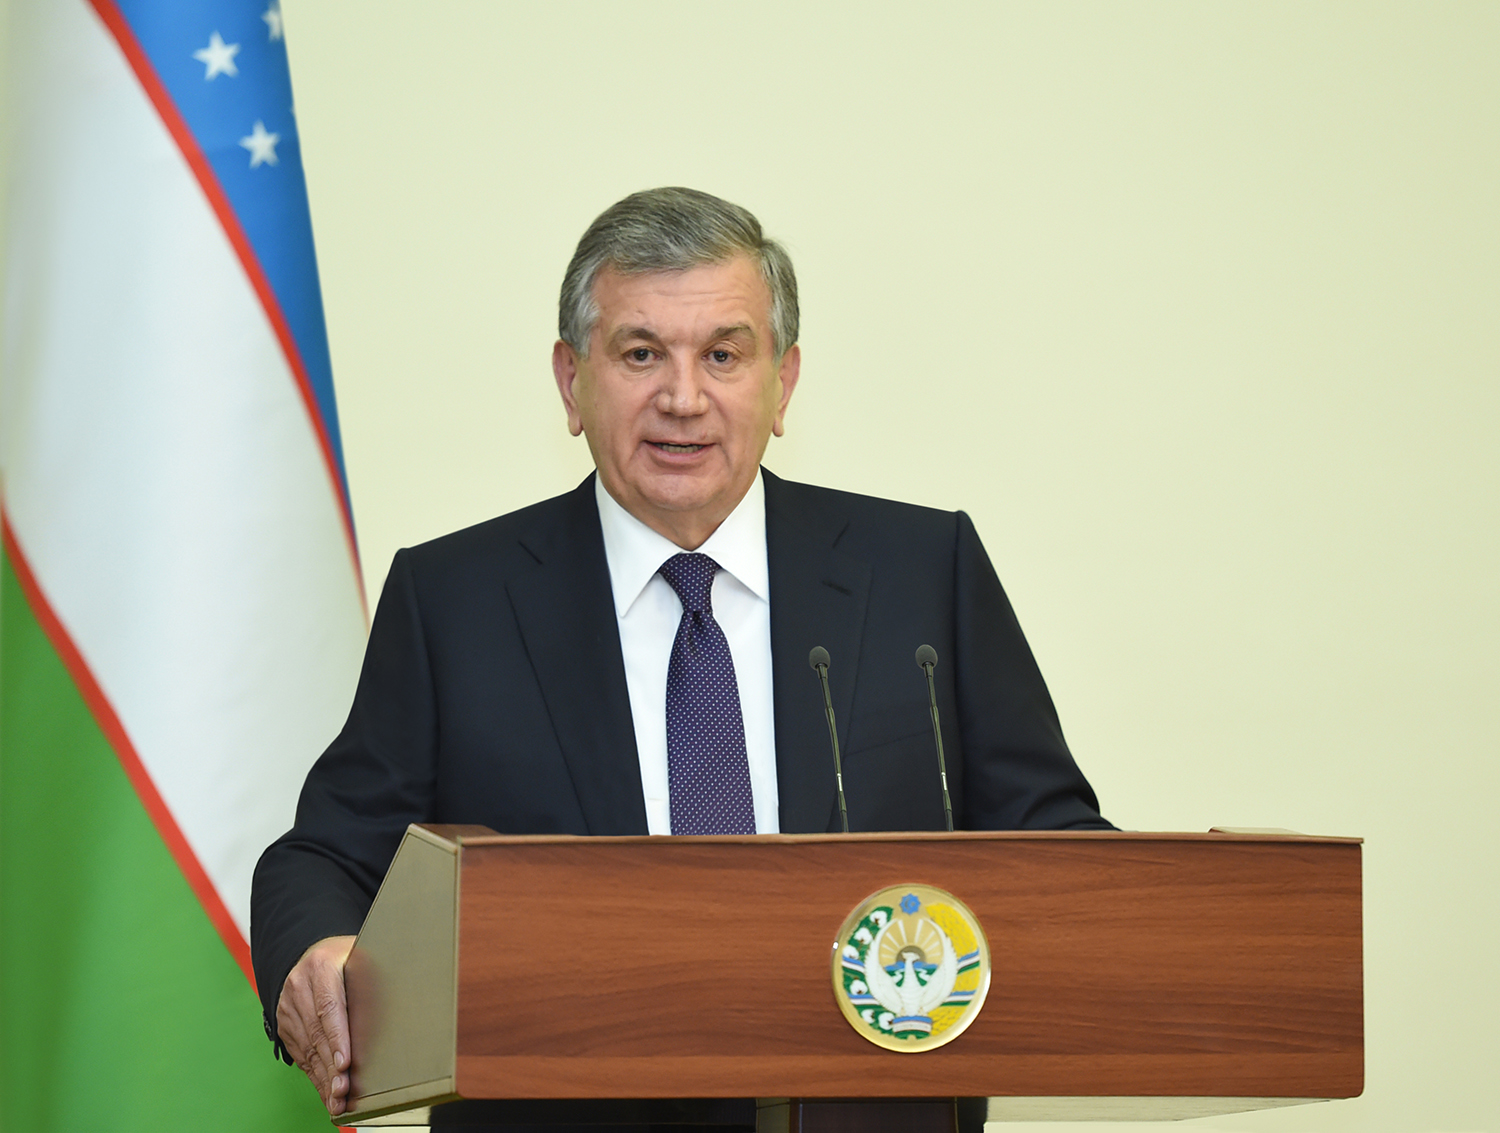 PRESIDENT OF UZBEKISTAN RECEIVED THE PRESIDENT OF THE EUROPEAN BANK FOR RECONSTRUCTION AND DEVELOPMENT